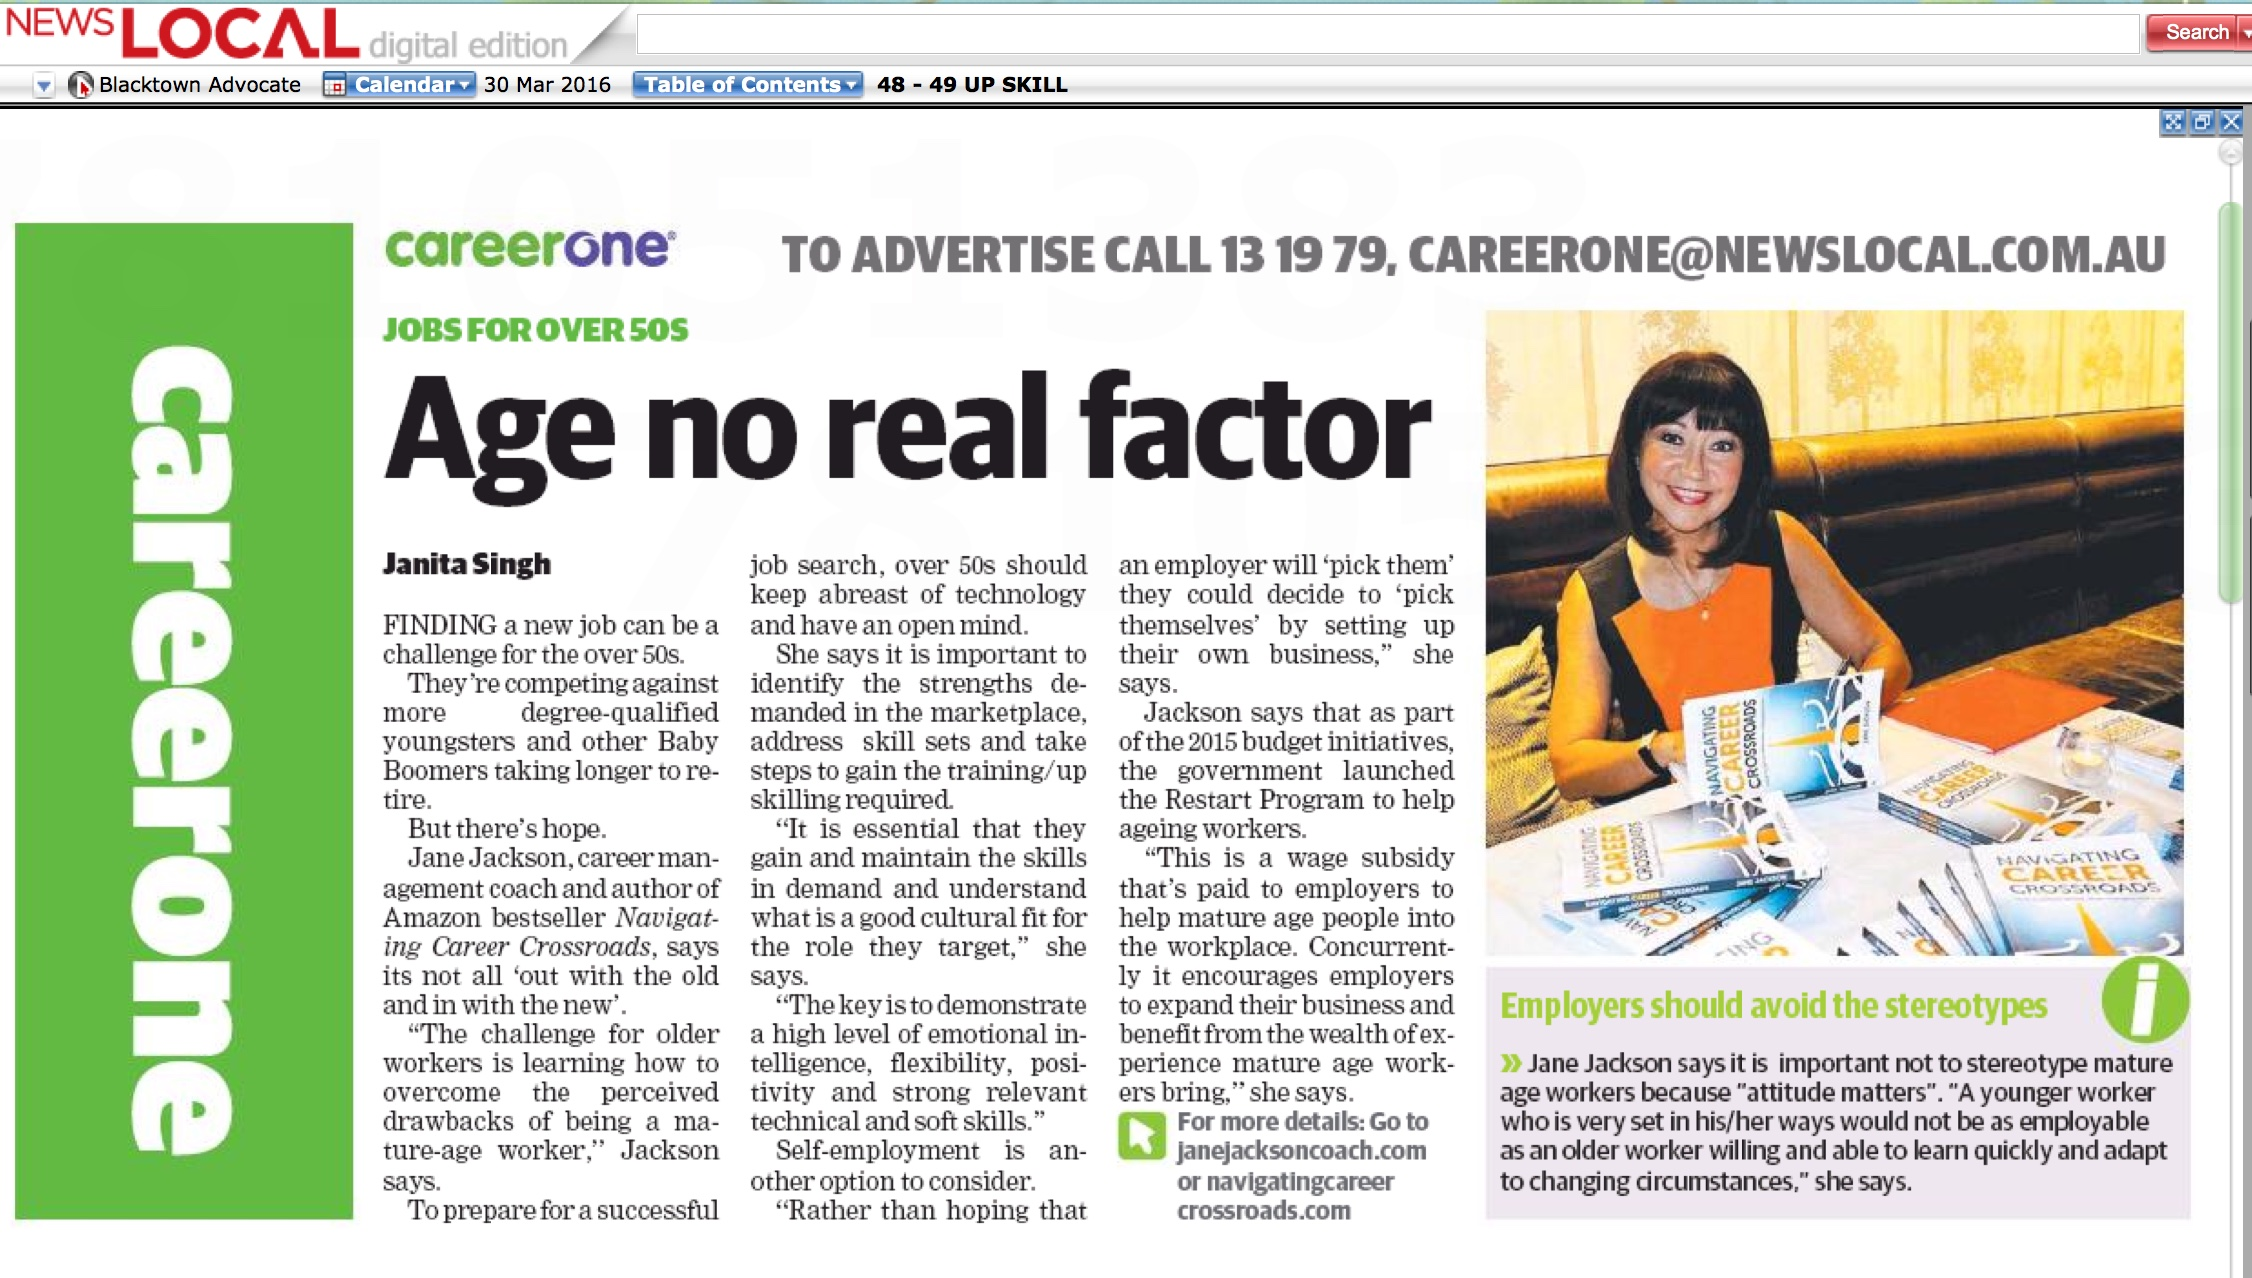 Mosman Daily, News Local, Career One, Jane Jackson